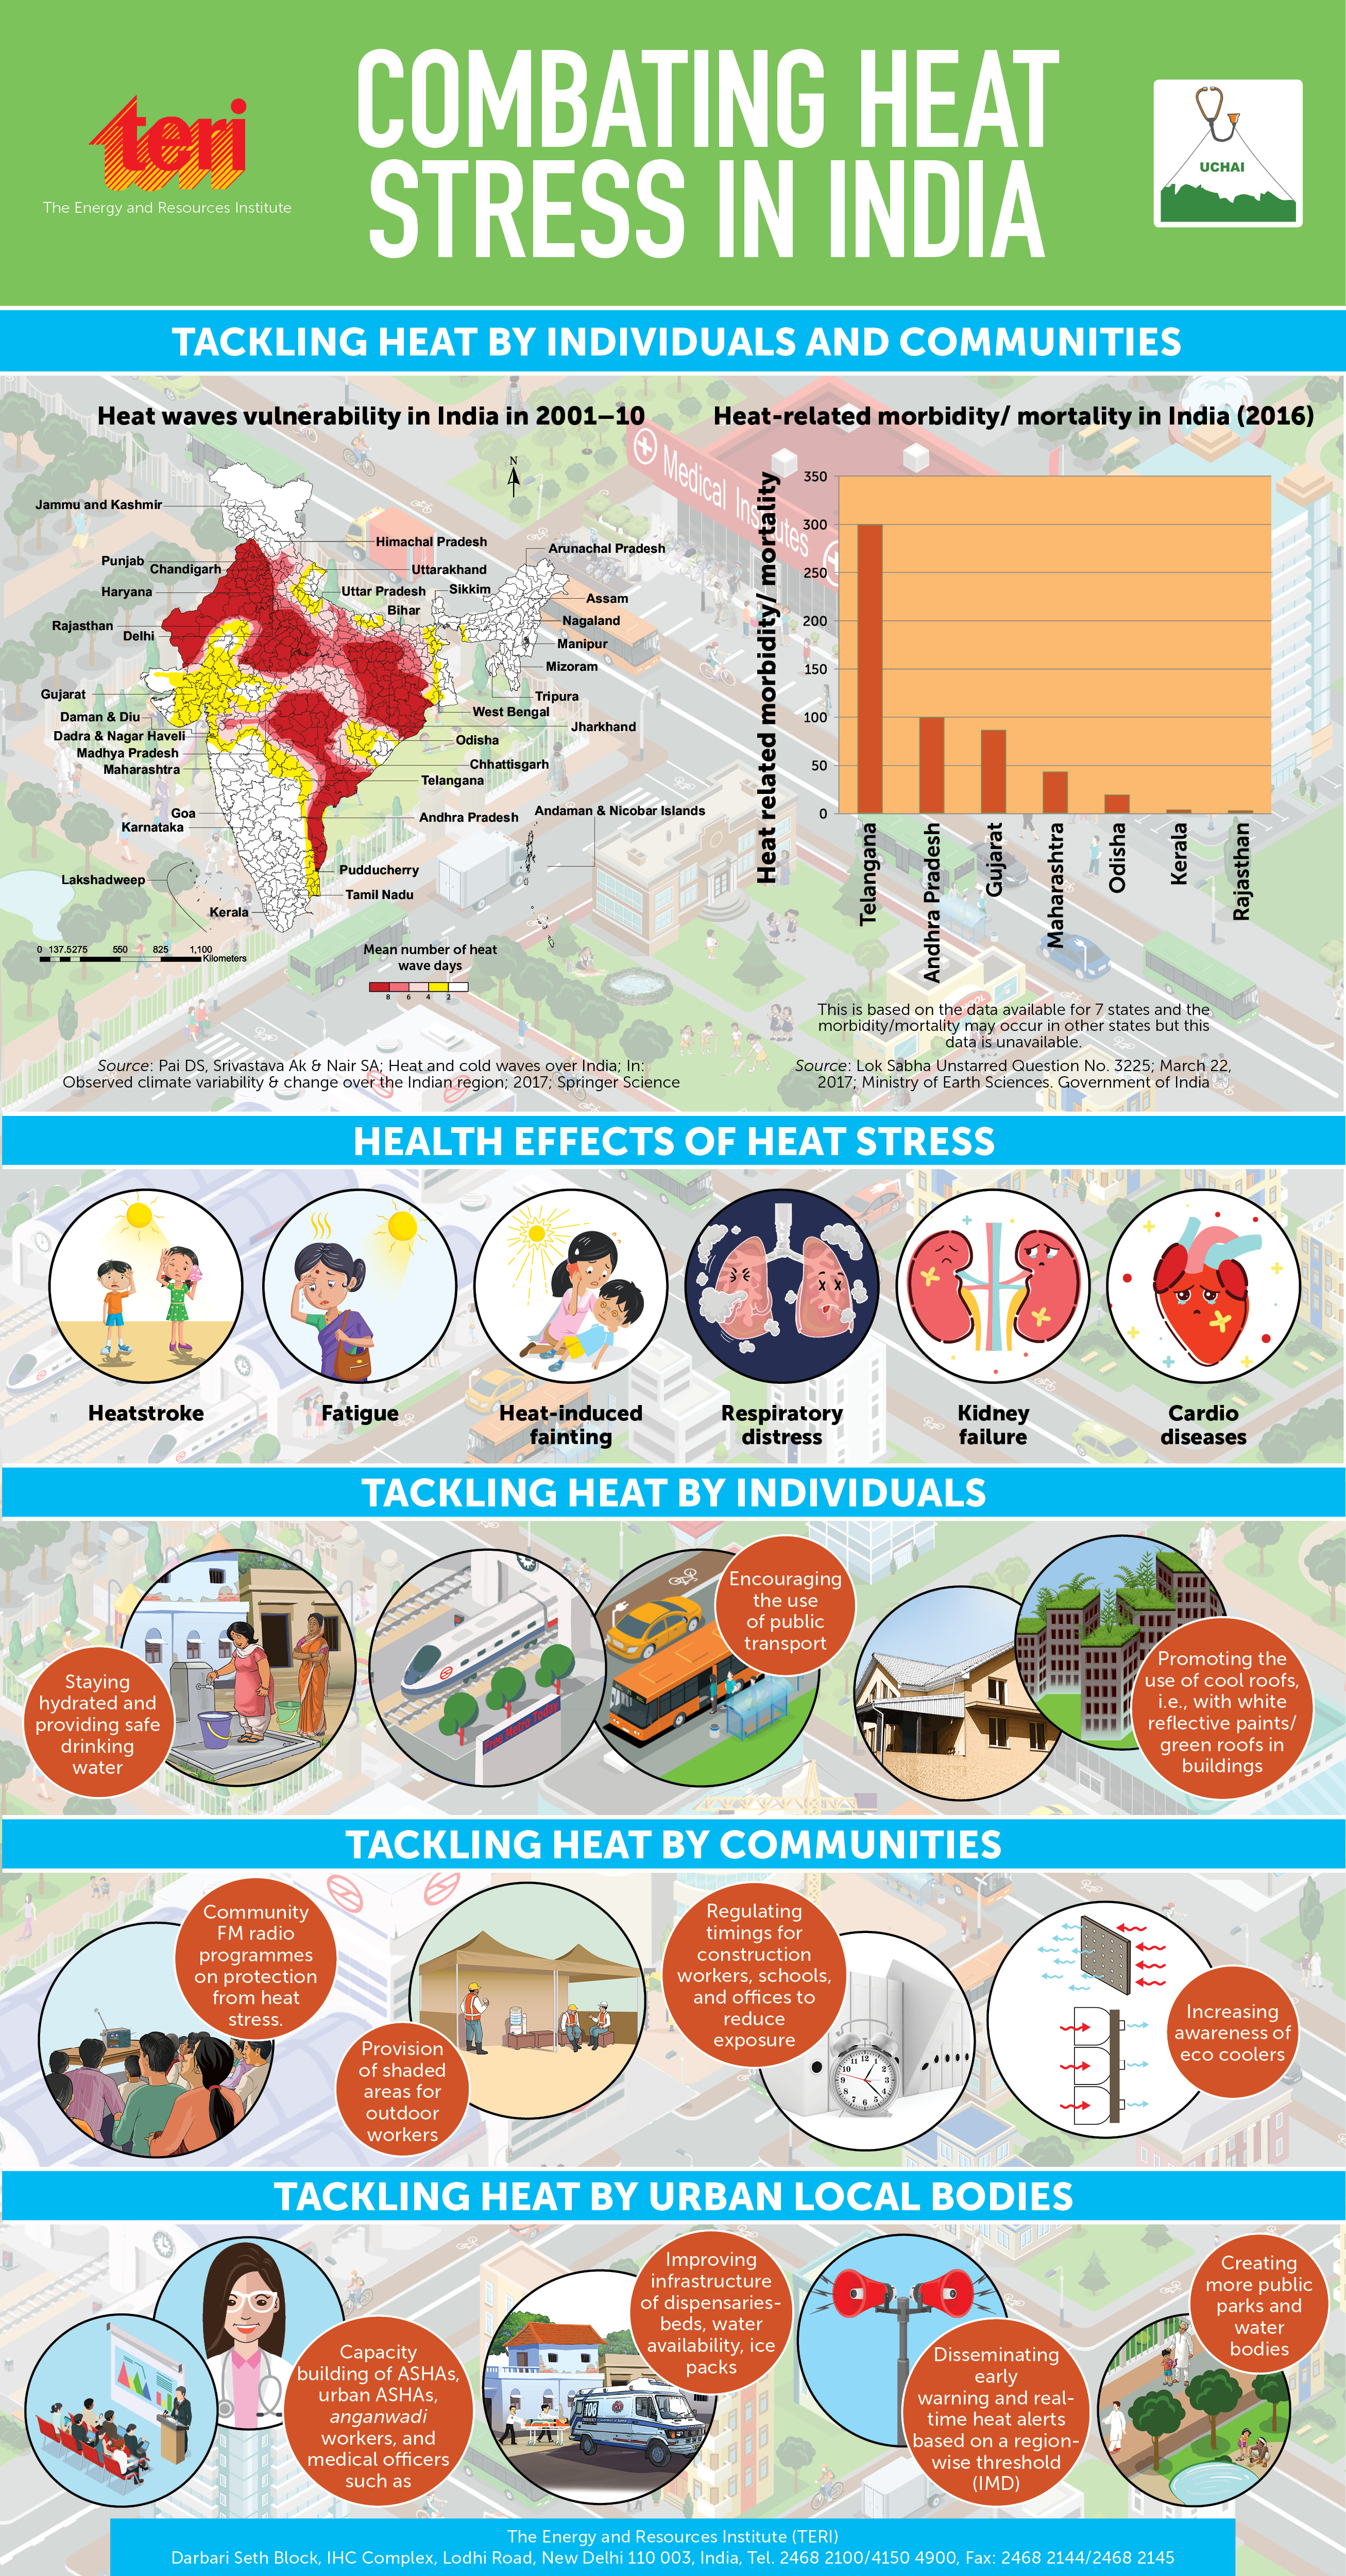 Understanding the health impacts of heat stress in India